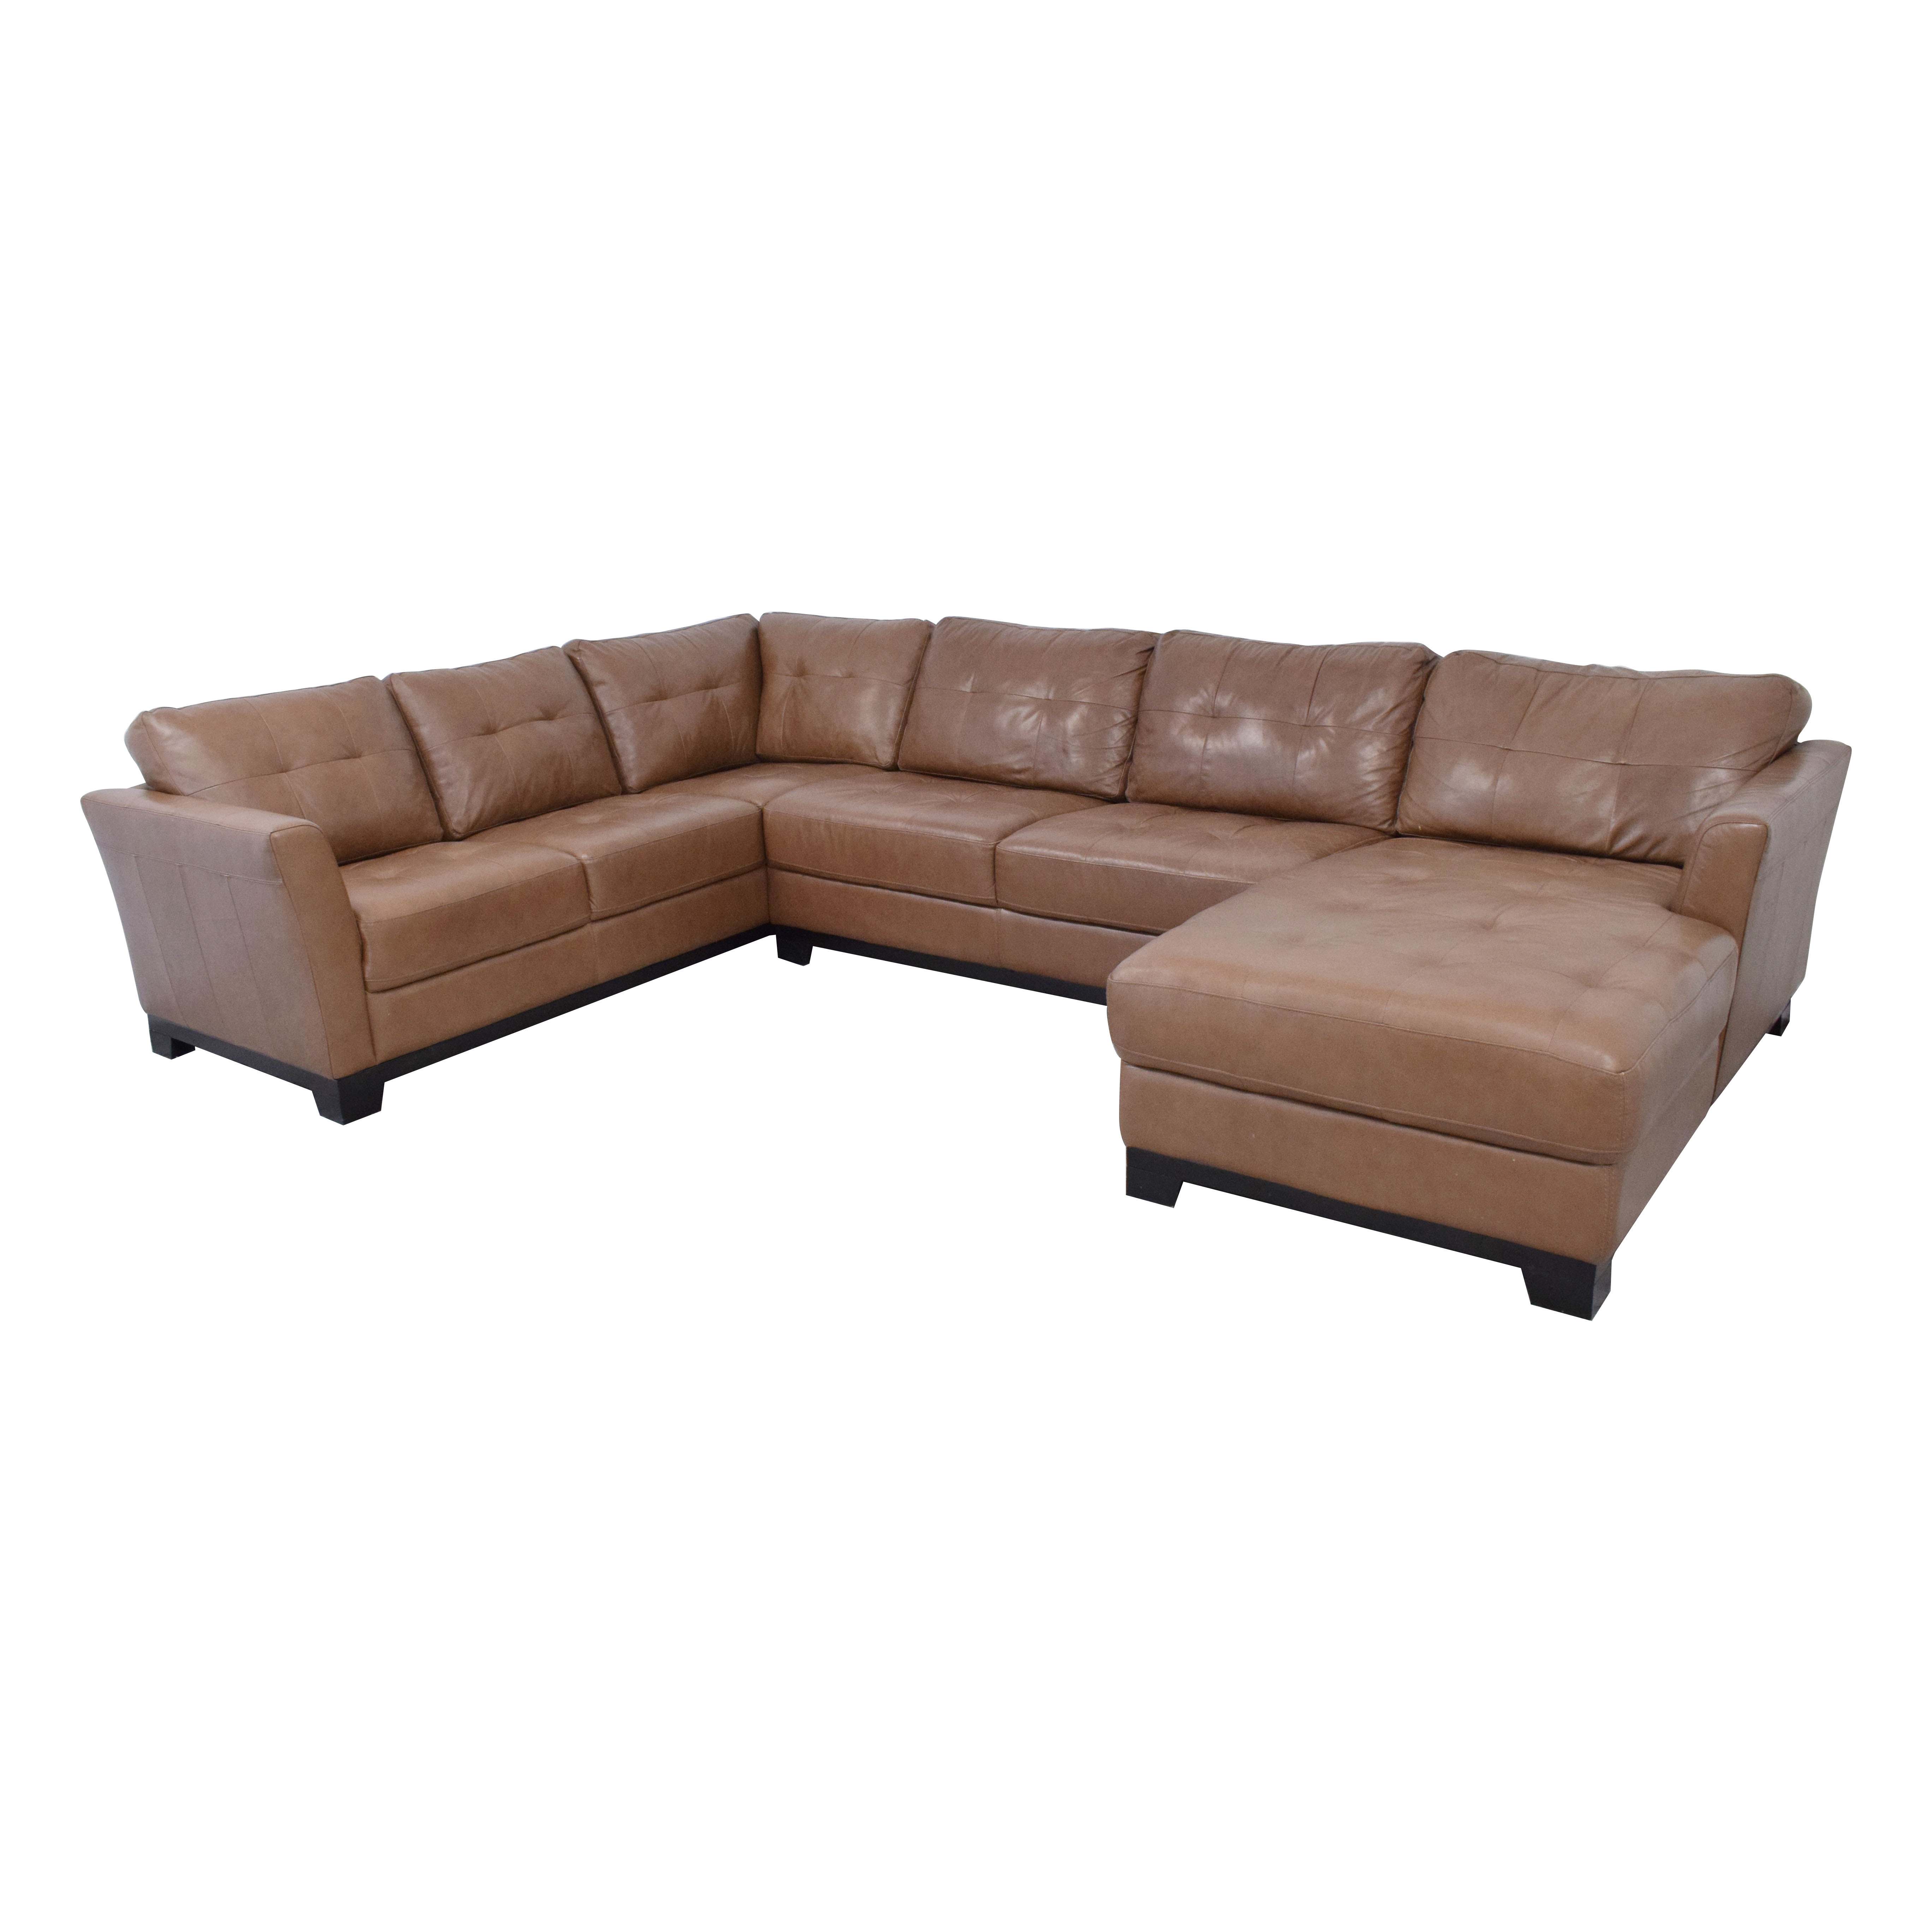 Chateau d'Ax Chateau d'Ax Sectional Sofa with Chaise nj